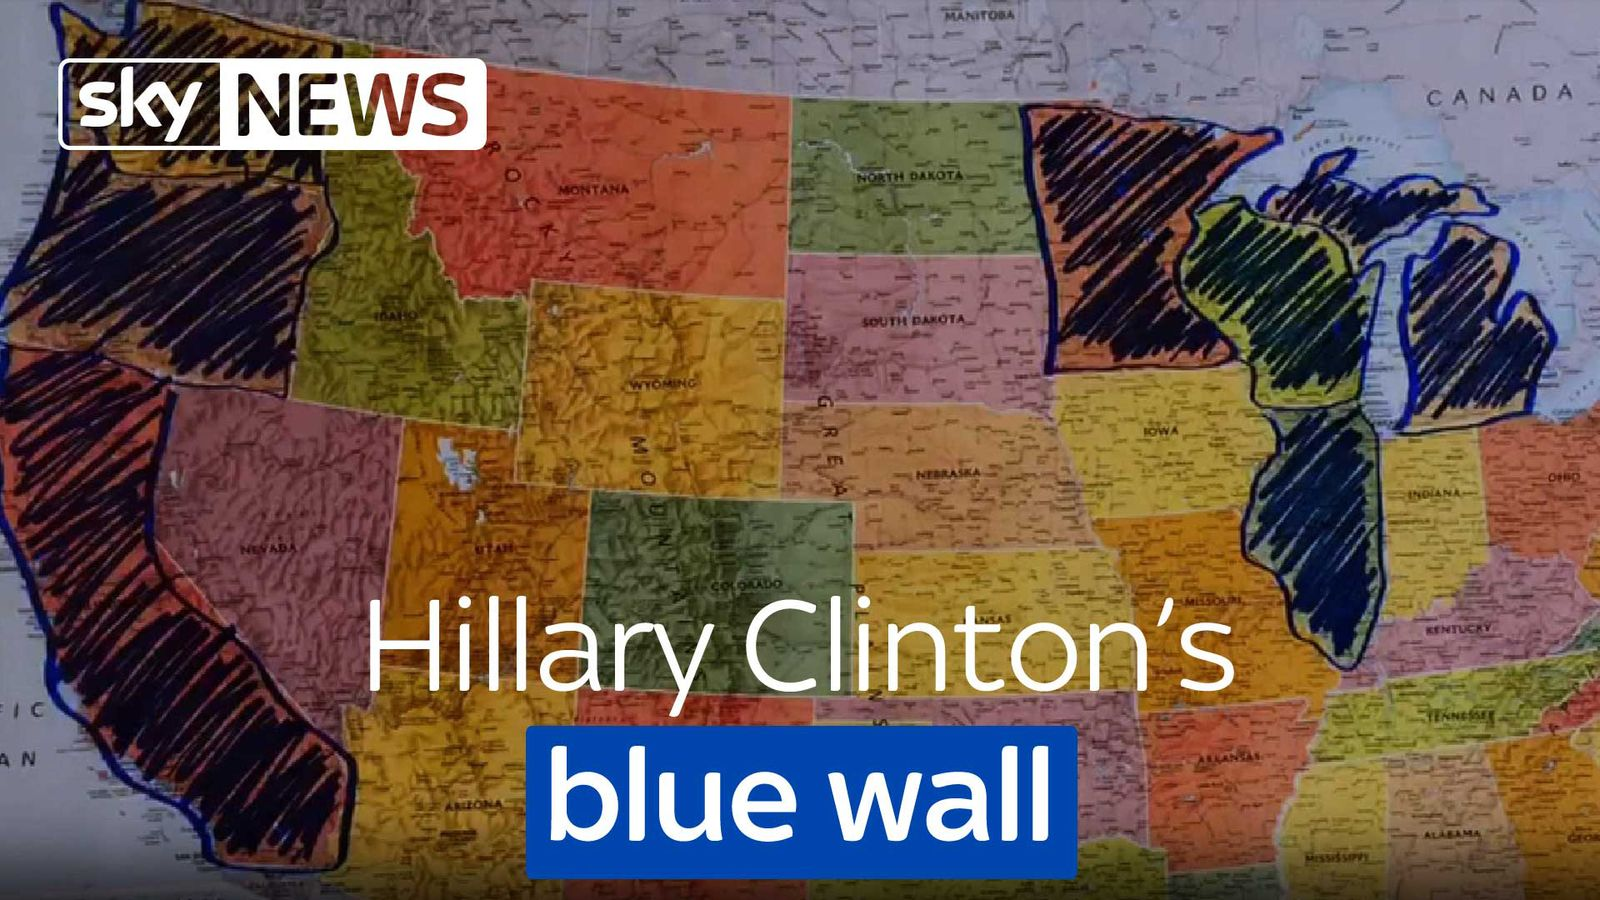 Hillary Clinton's blue wall